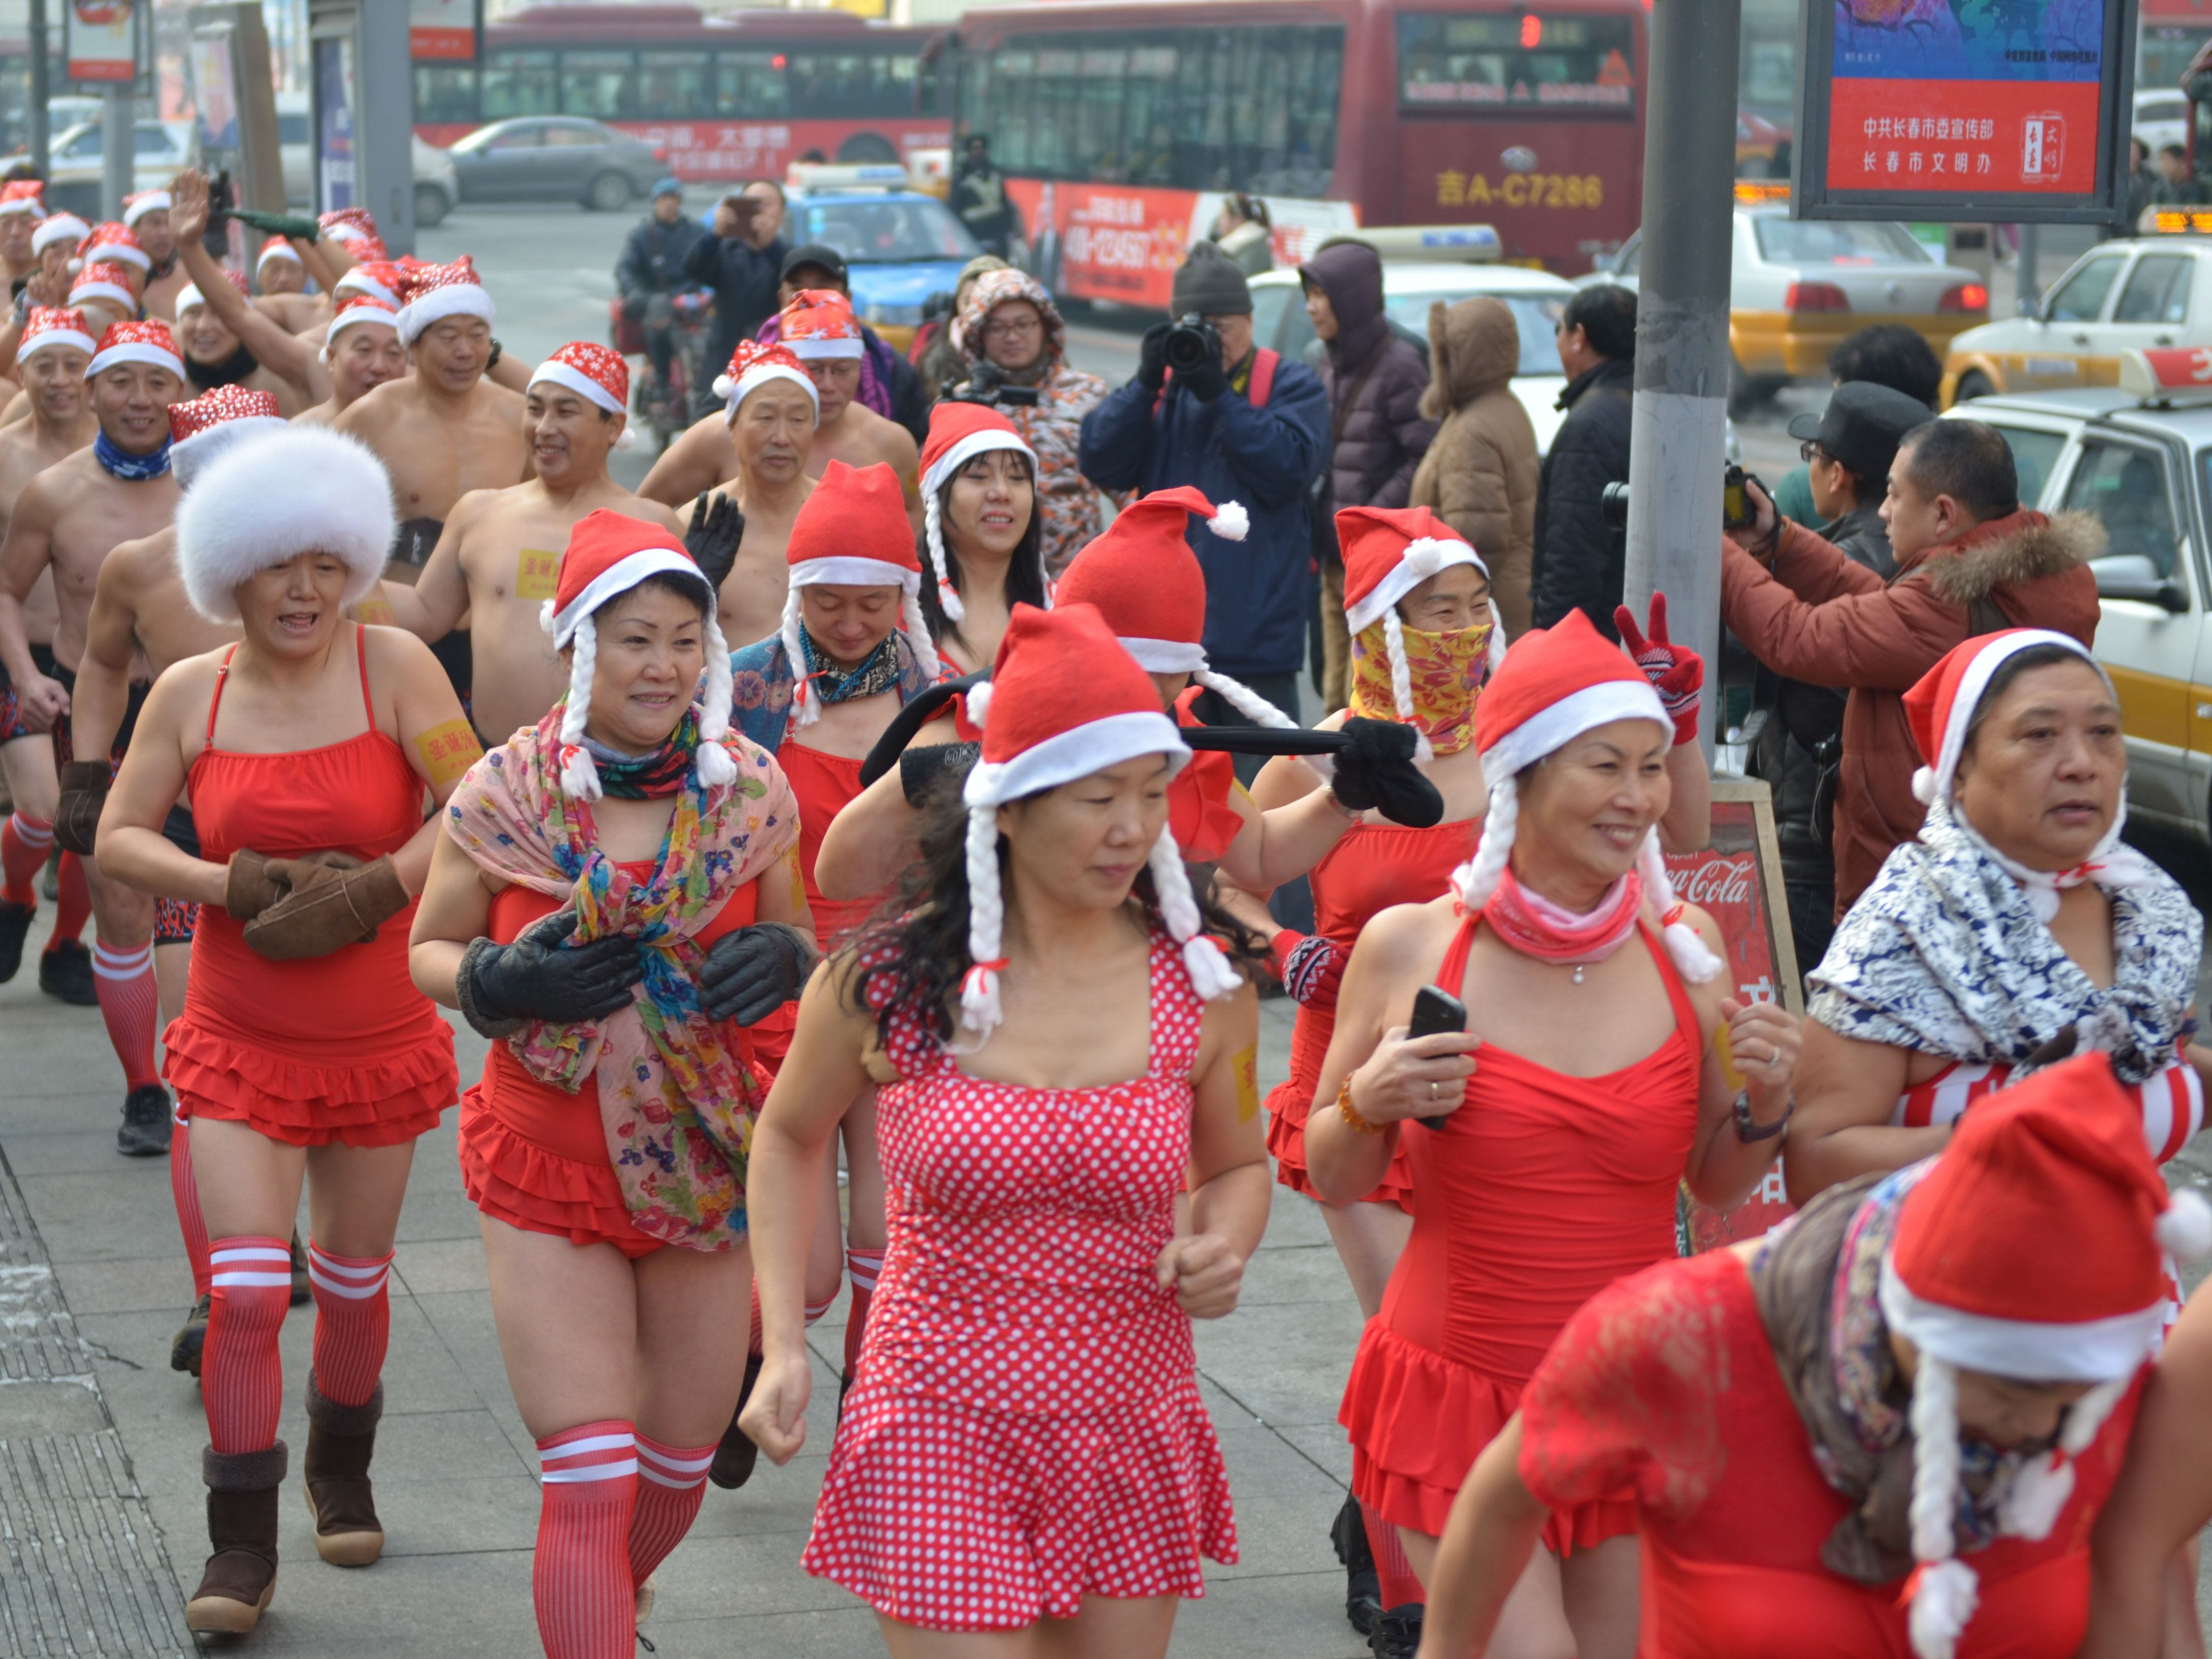 This photo taken on December 23, 2018 shows winter swimming enthusiasts wearing Santa hats attending a running event at temperatures of minus 21 degrees Celsius (-6 F) in Shenyang in China's northeastern Liaoning province, to promote benefits of winter swimming. (Photo by STR / AFP) / China OUTSTR/AFP/Getty Images ORIG FILE ID: AFP_1BT37Z